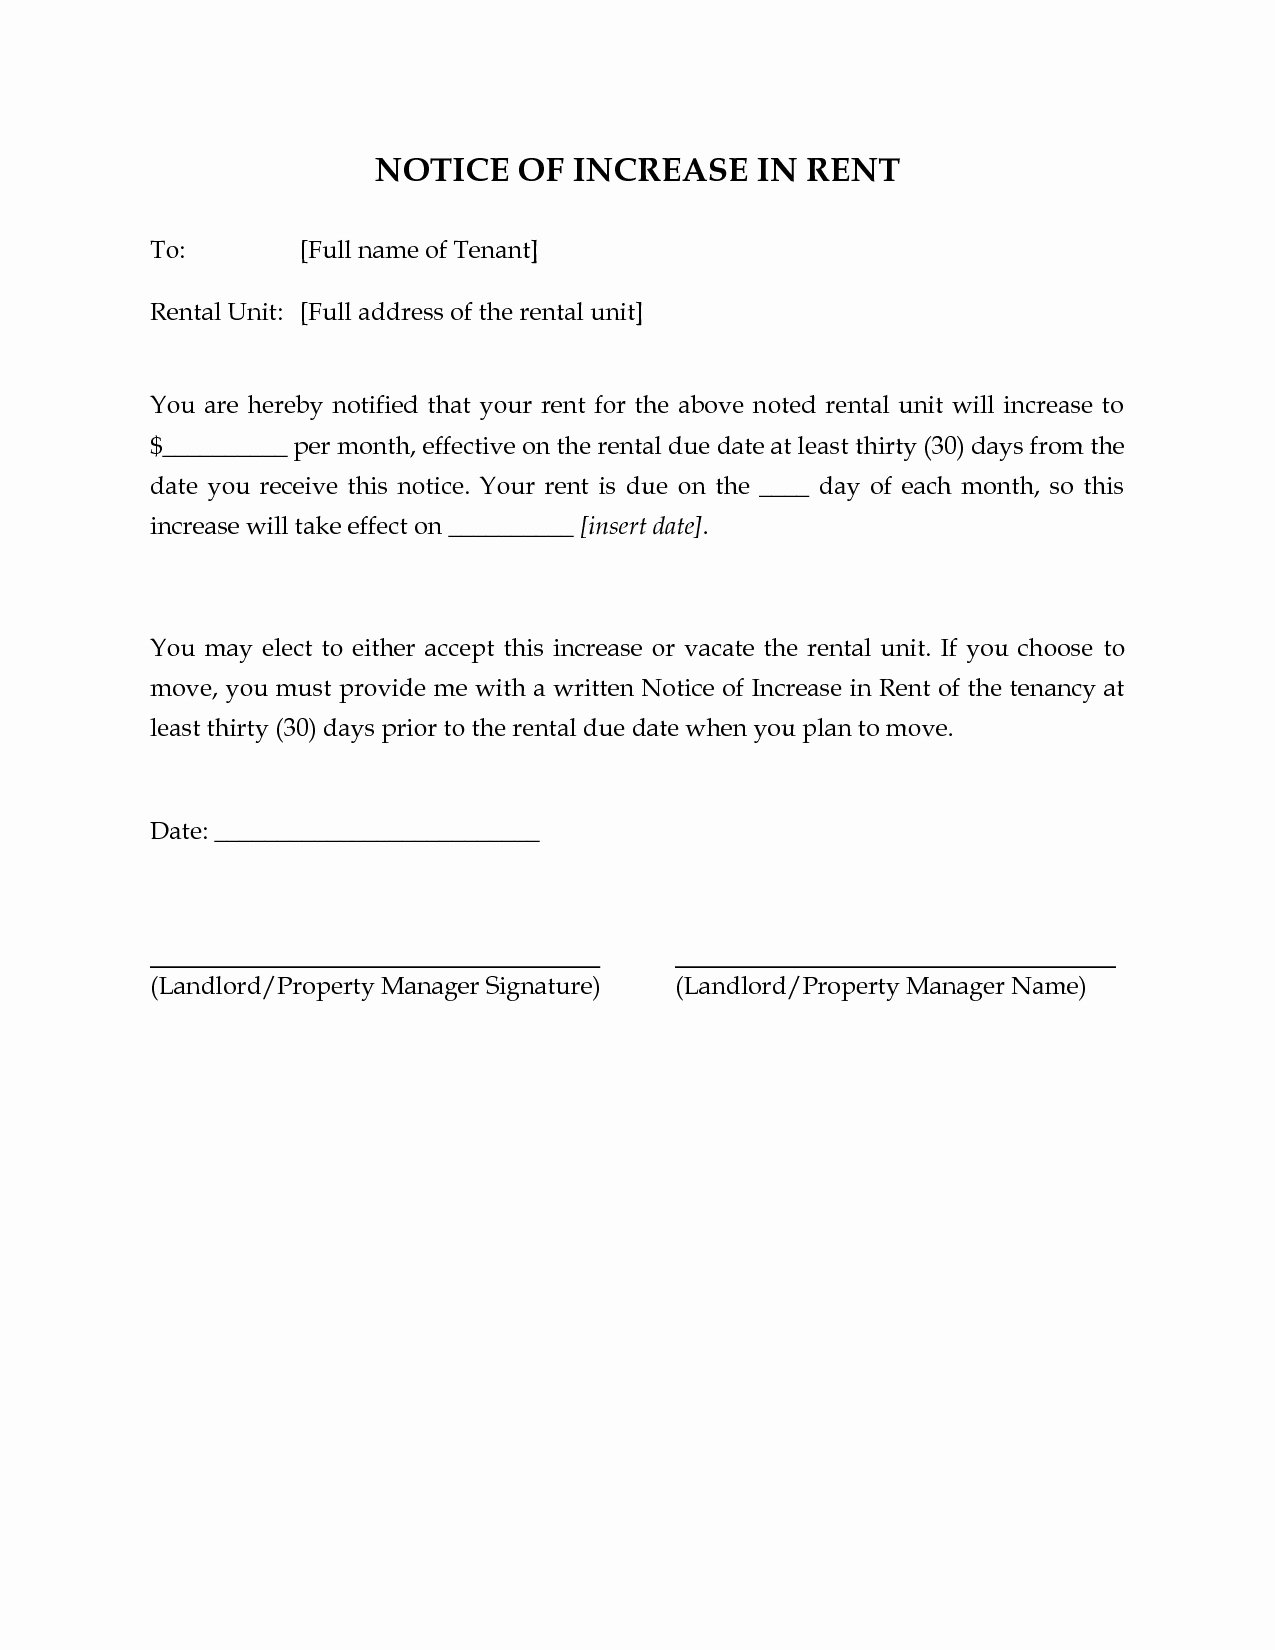 Sample Rent Increase Letter Elegant 16 Rent Increase Letter to Tenant Template Collection